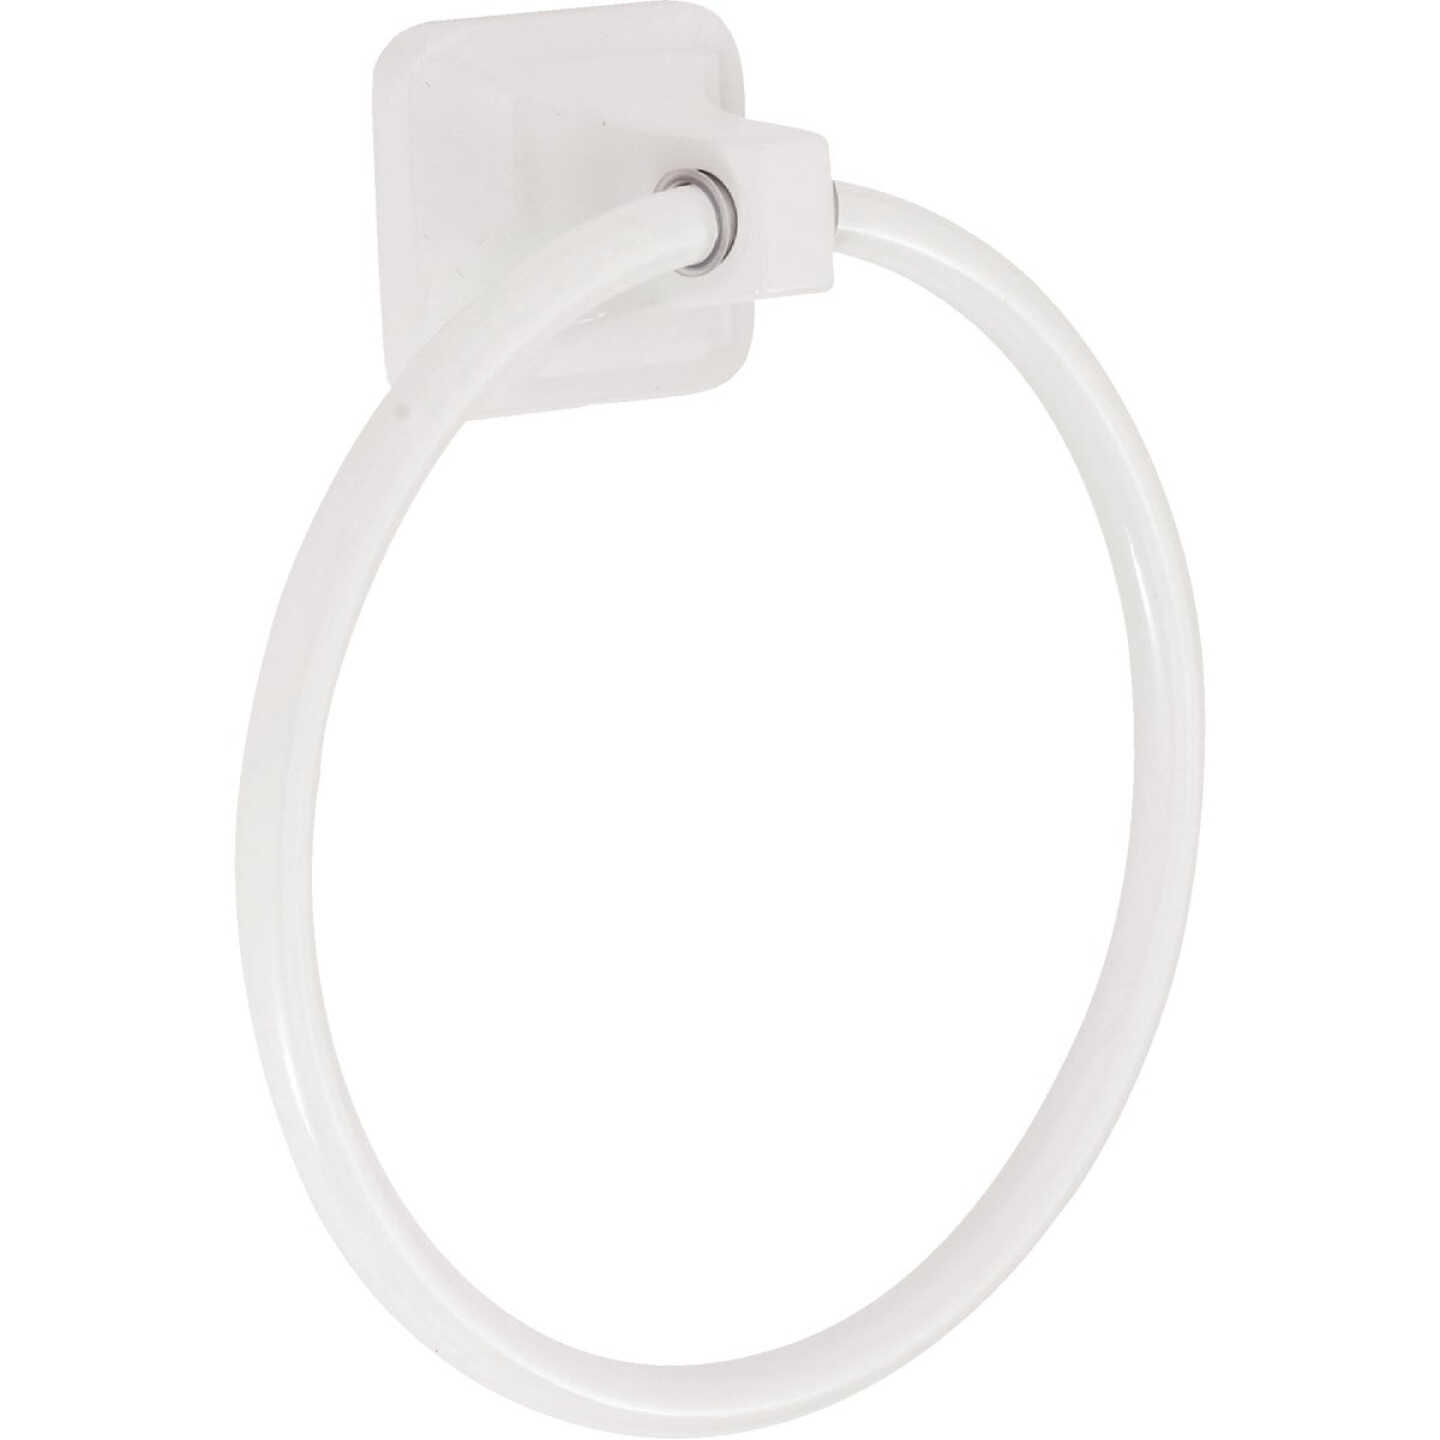 Home Impressions White Towel Ring Image 5